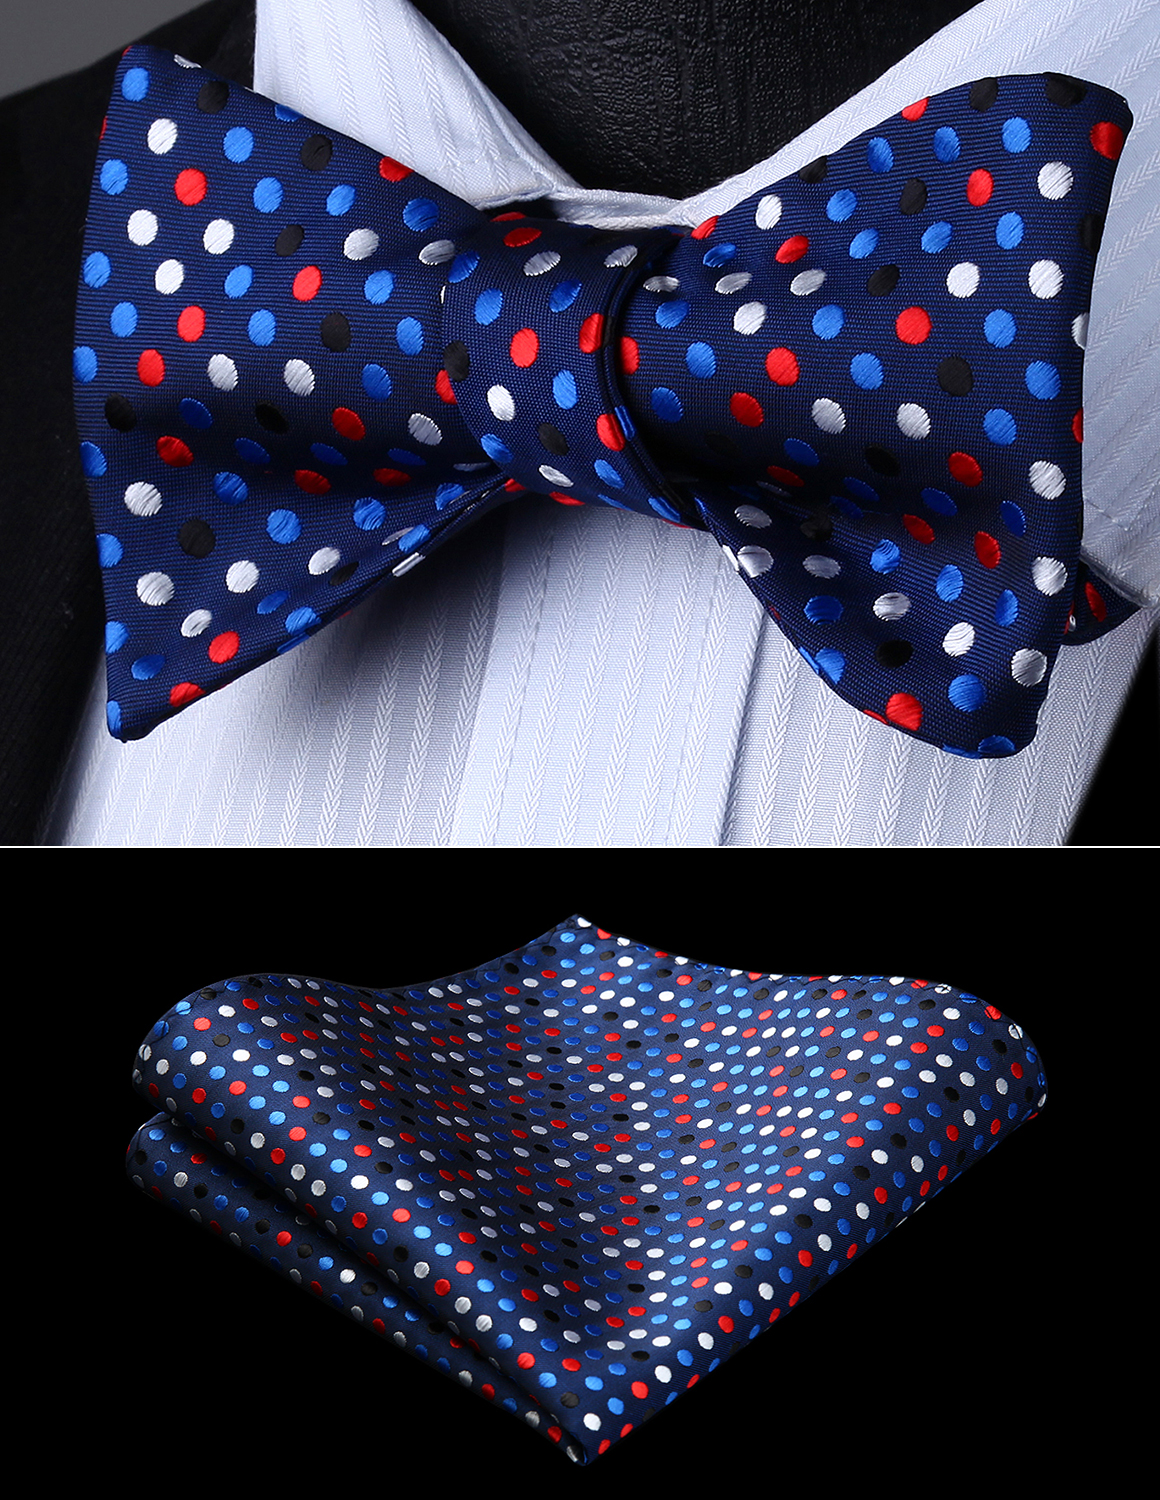 Classic Polka Dots Woven Pre-tied Bow Tie 5 w//Pocket Square /& Cufflinks Gift Set